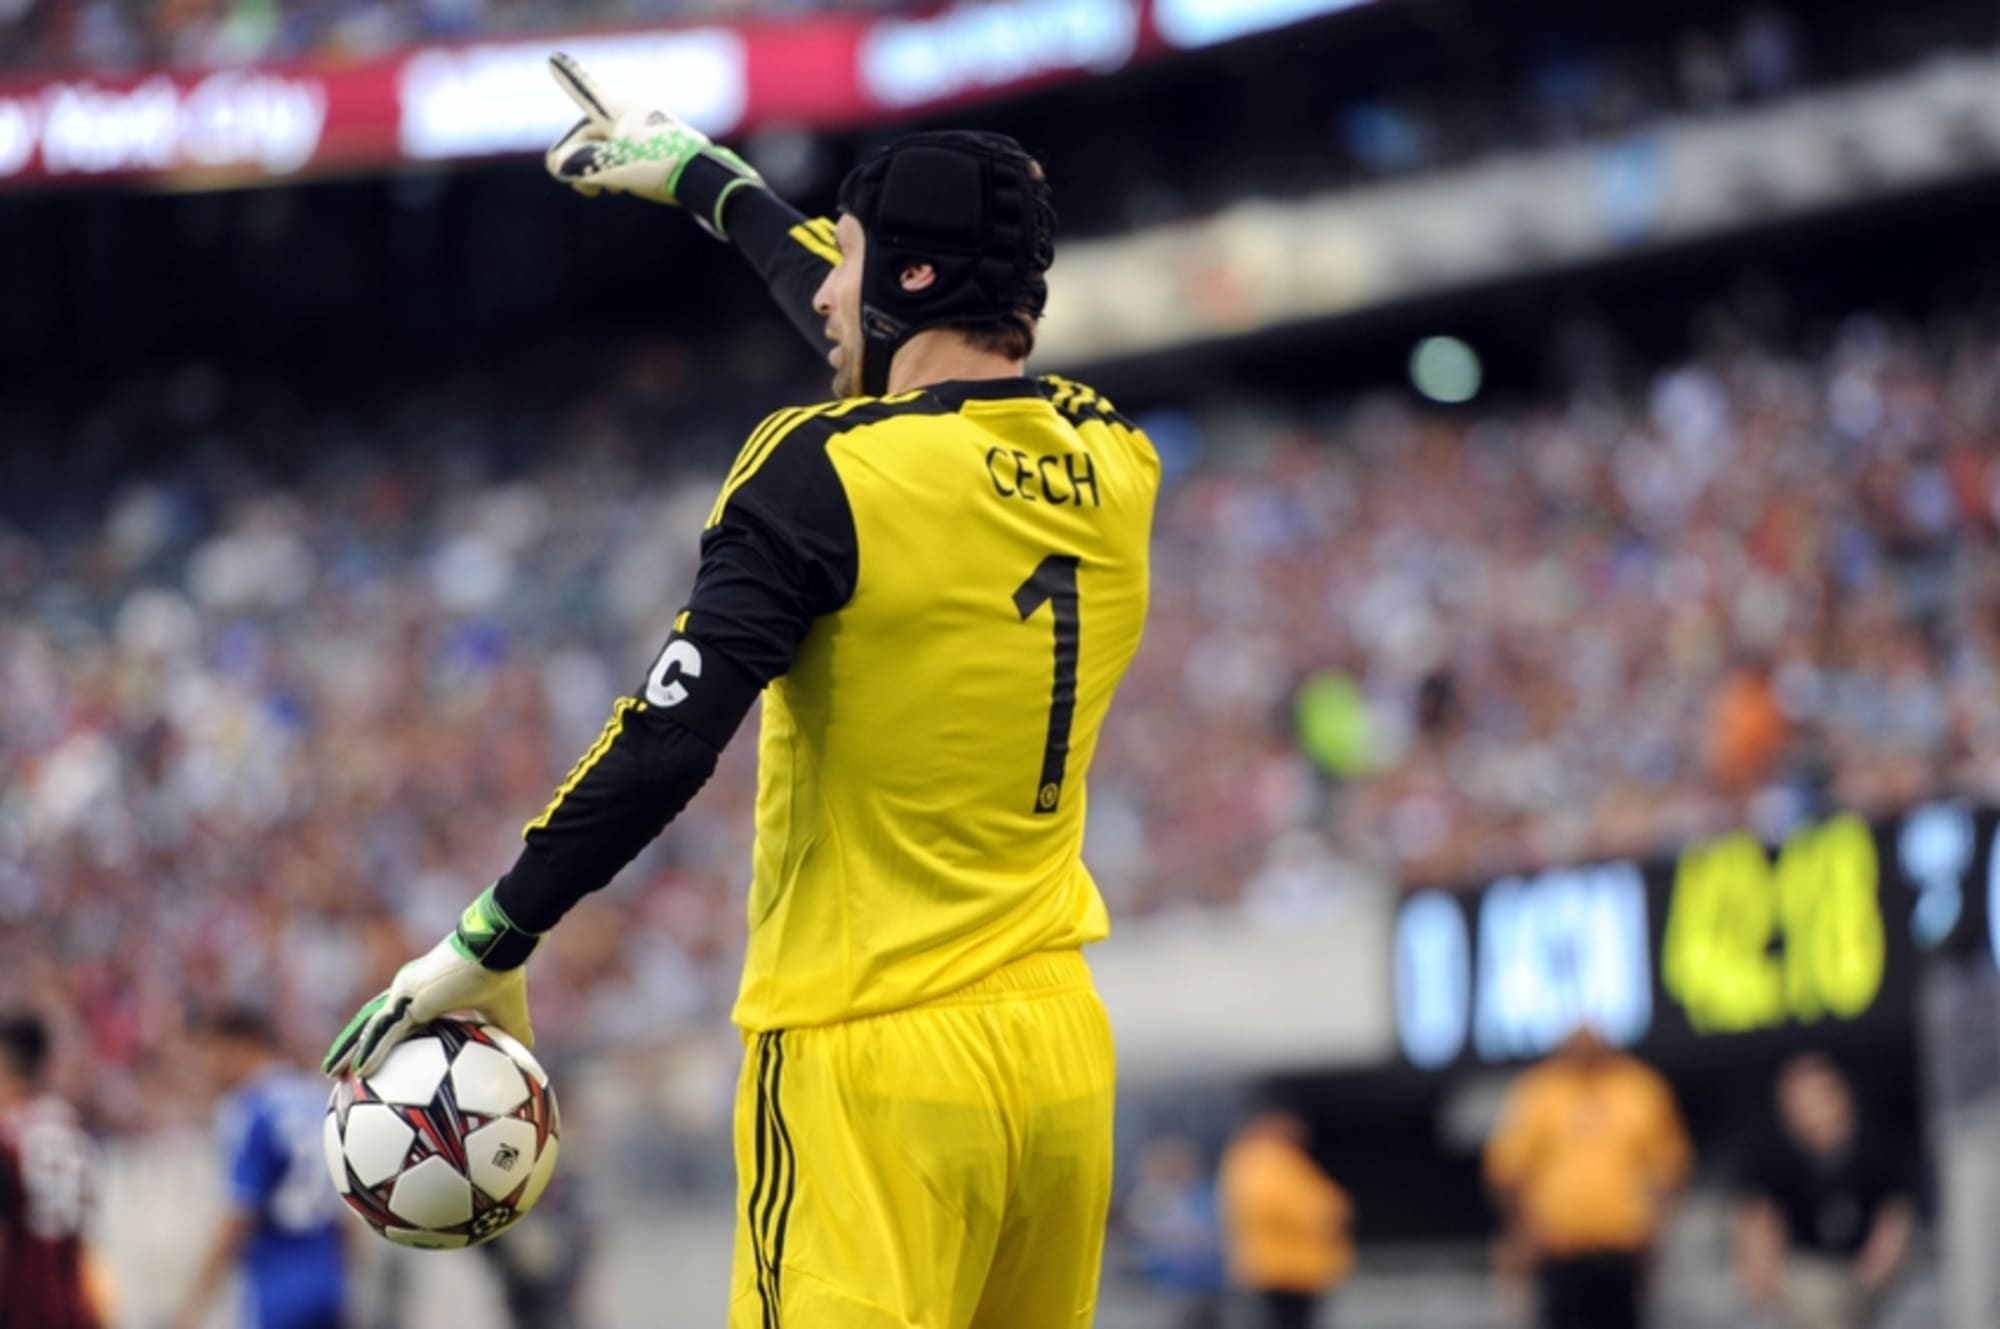 Arsenal: Petr Cech Tops Wenger's List Of Missed Chances